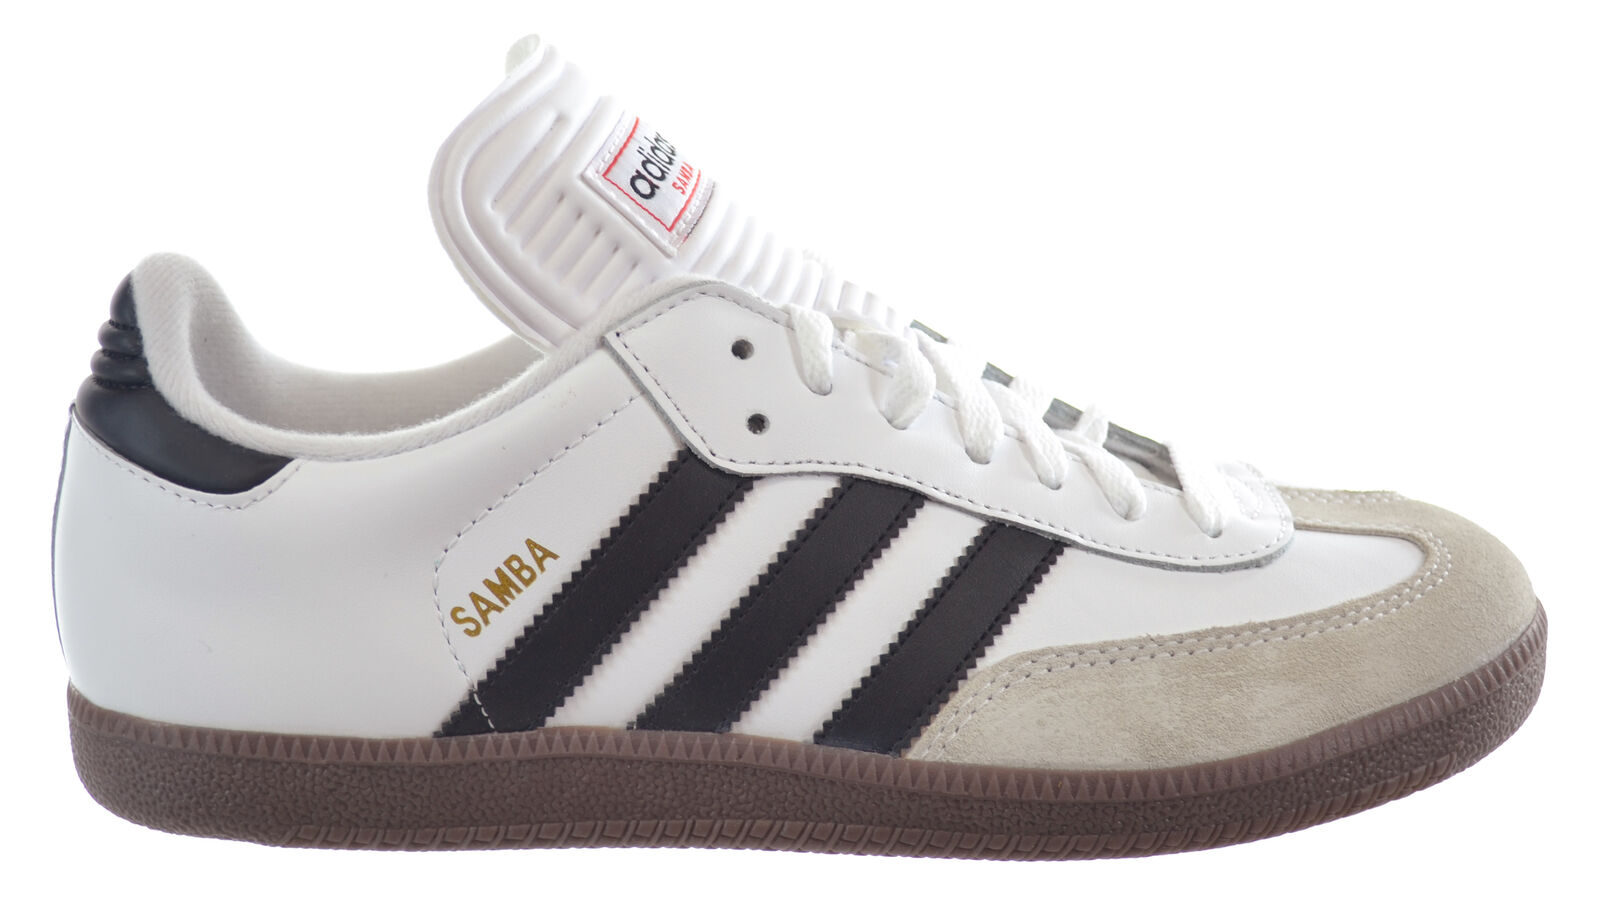 Adidas Originals Samba Classic Men's shoes Run White Black 772109